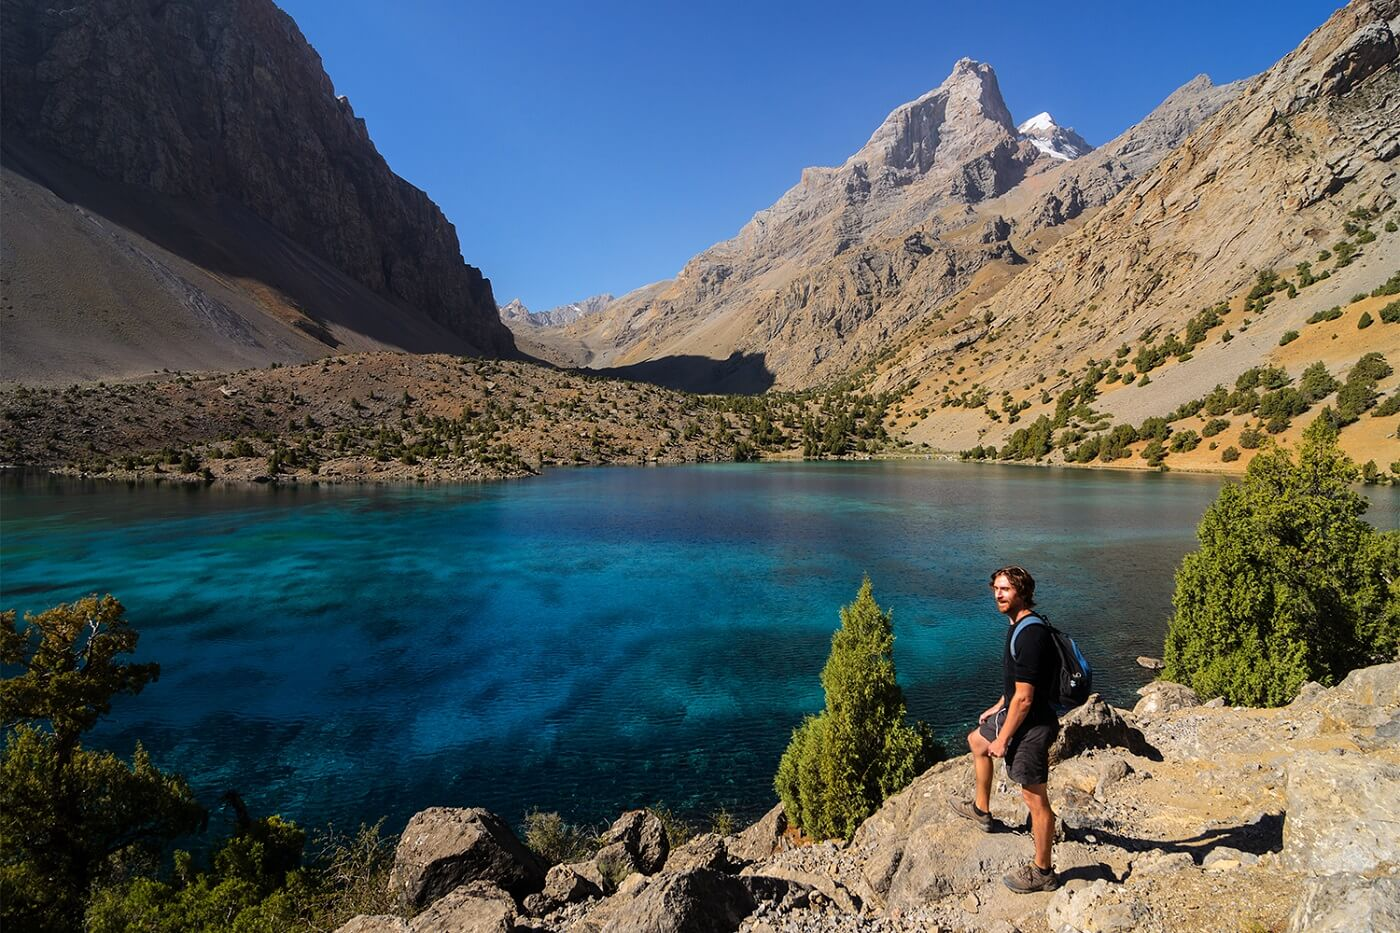 Tajikistan trekking at Alovaddin lake